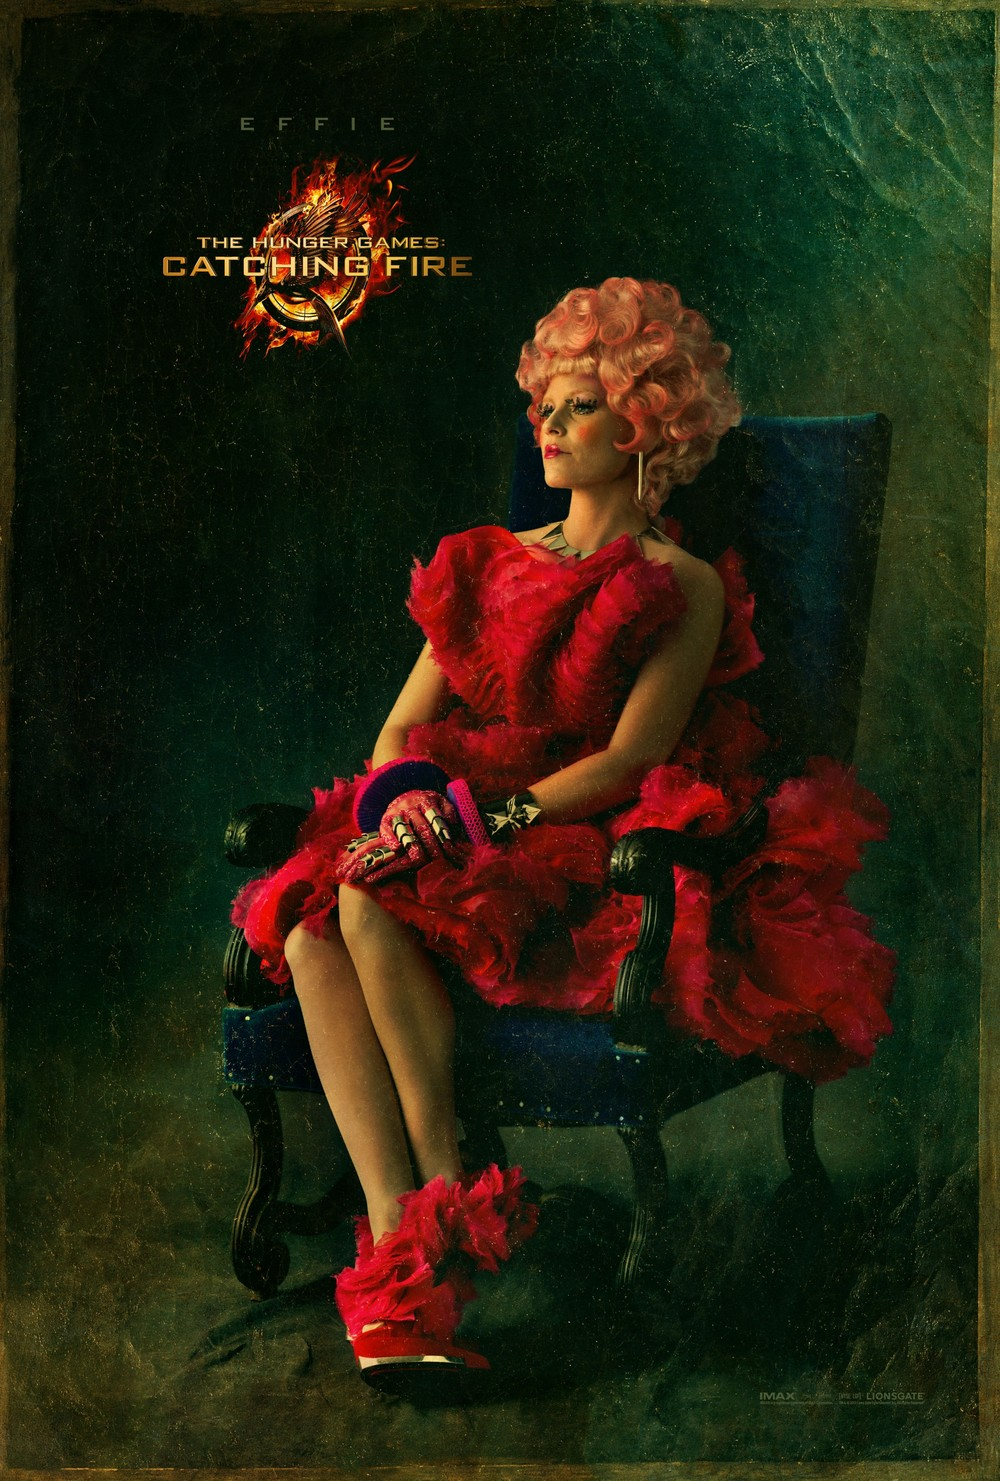 Why I Won't Watch The Hunger Games: Catching Fire